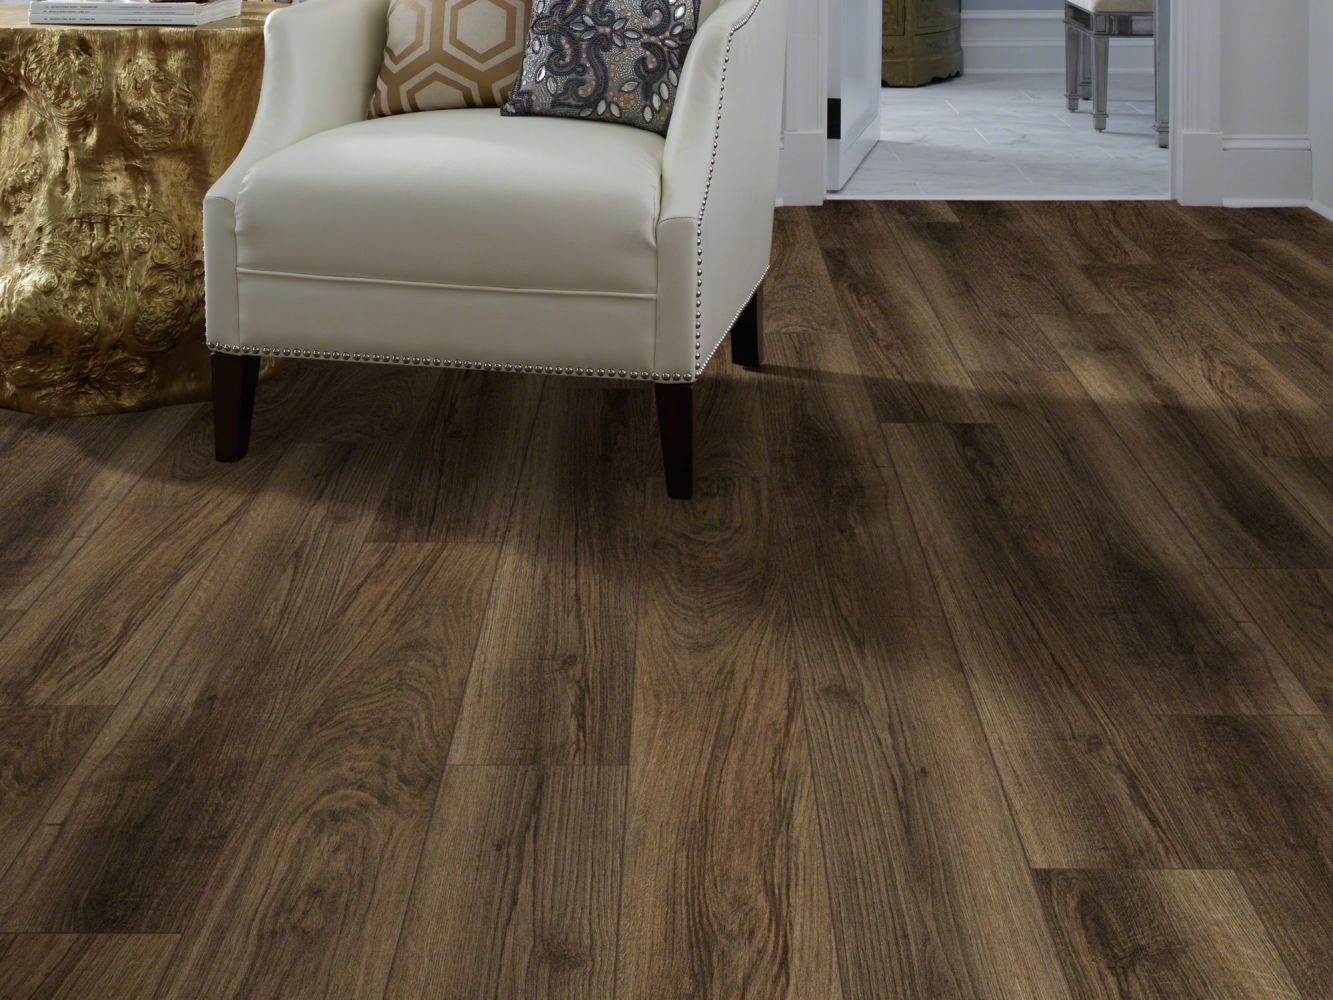 Shaw Floors SFA Sabine Hill Plus Cocco 00758_523SA